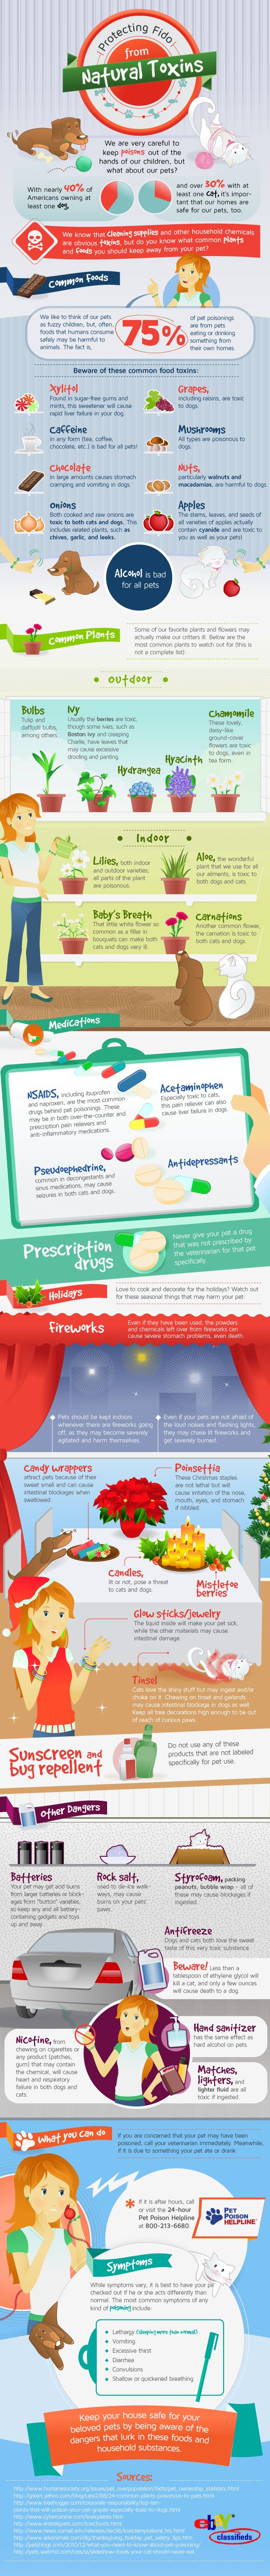 Protecting Fido From Natural Toxins #infographic